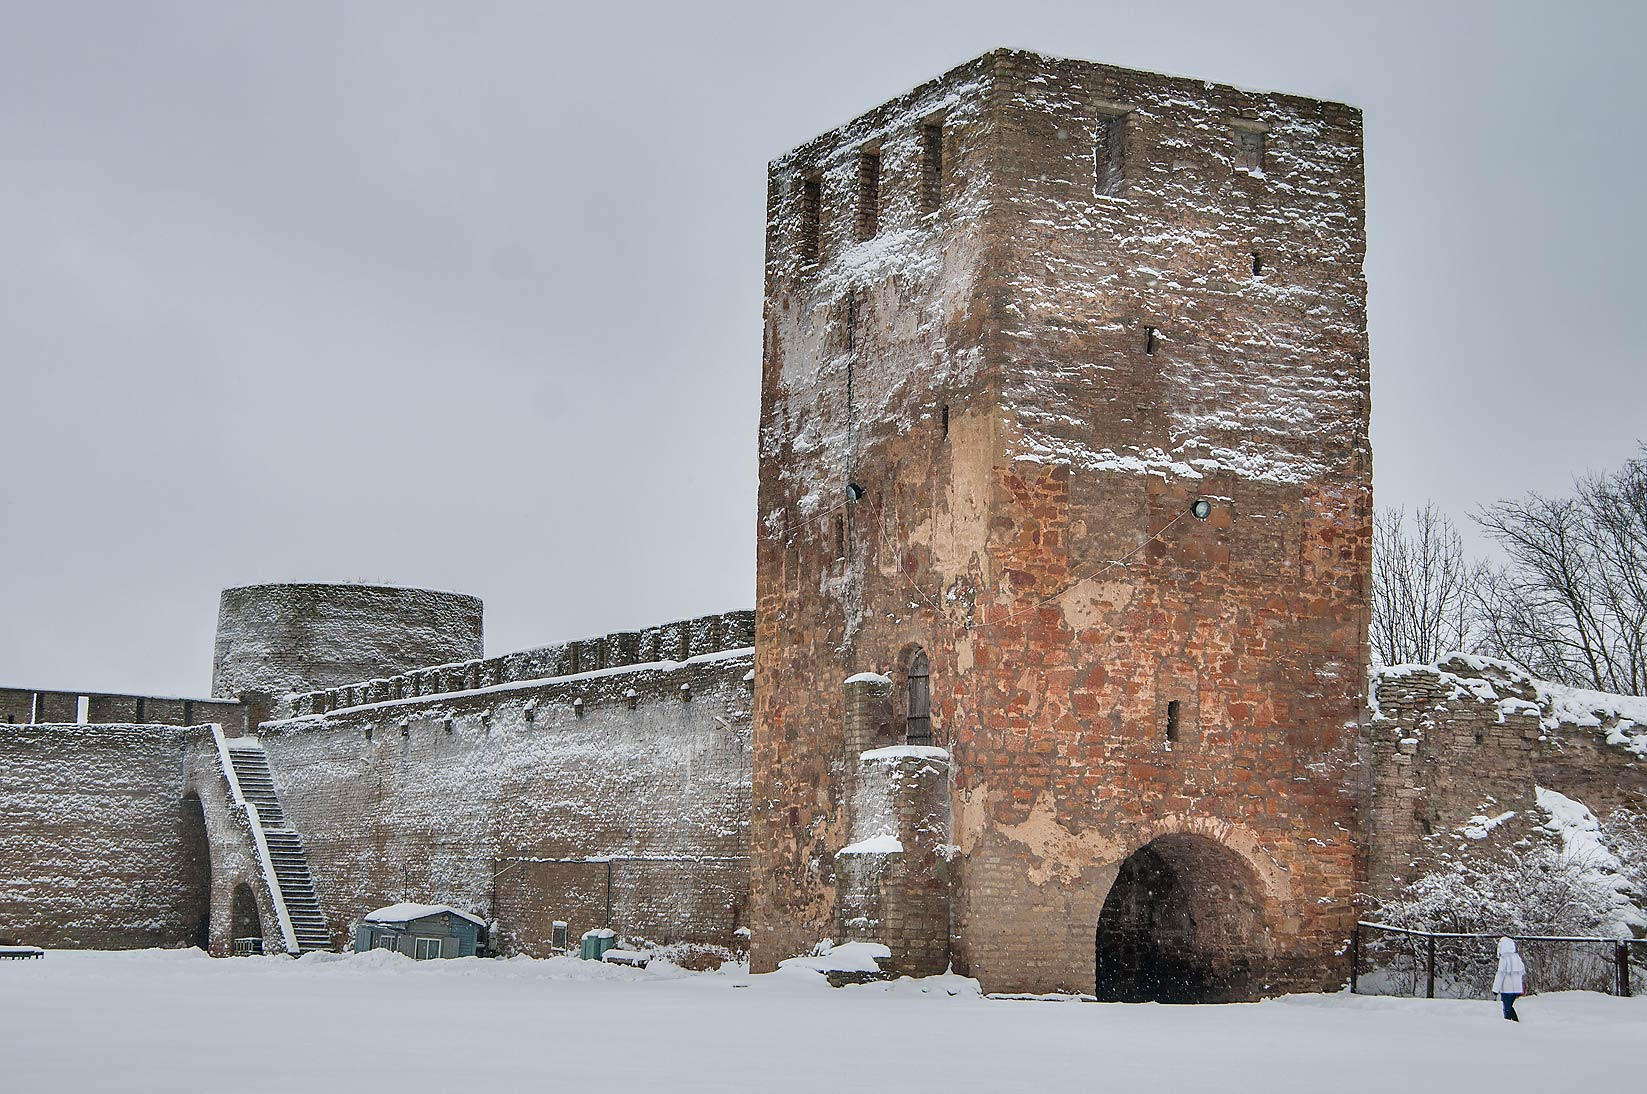 Tower of Ivan Gorod Fortress. Leningrad Region, Russia